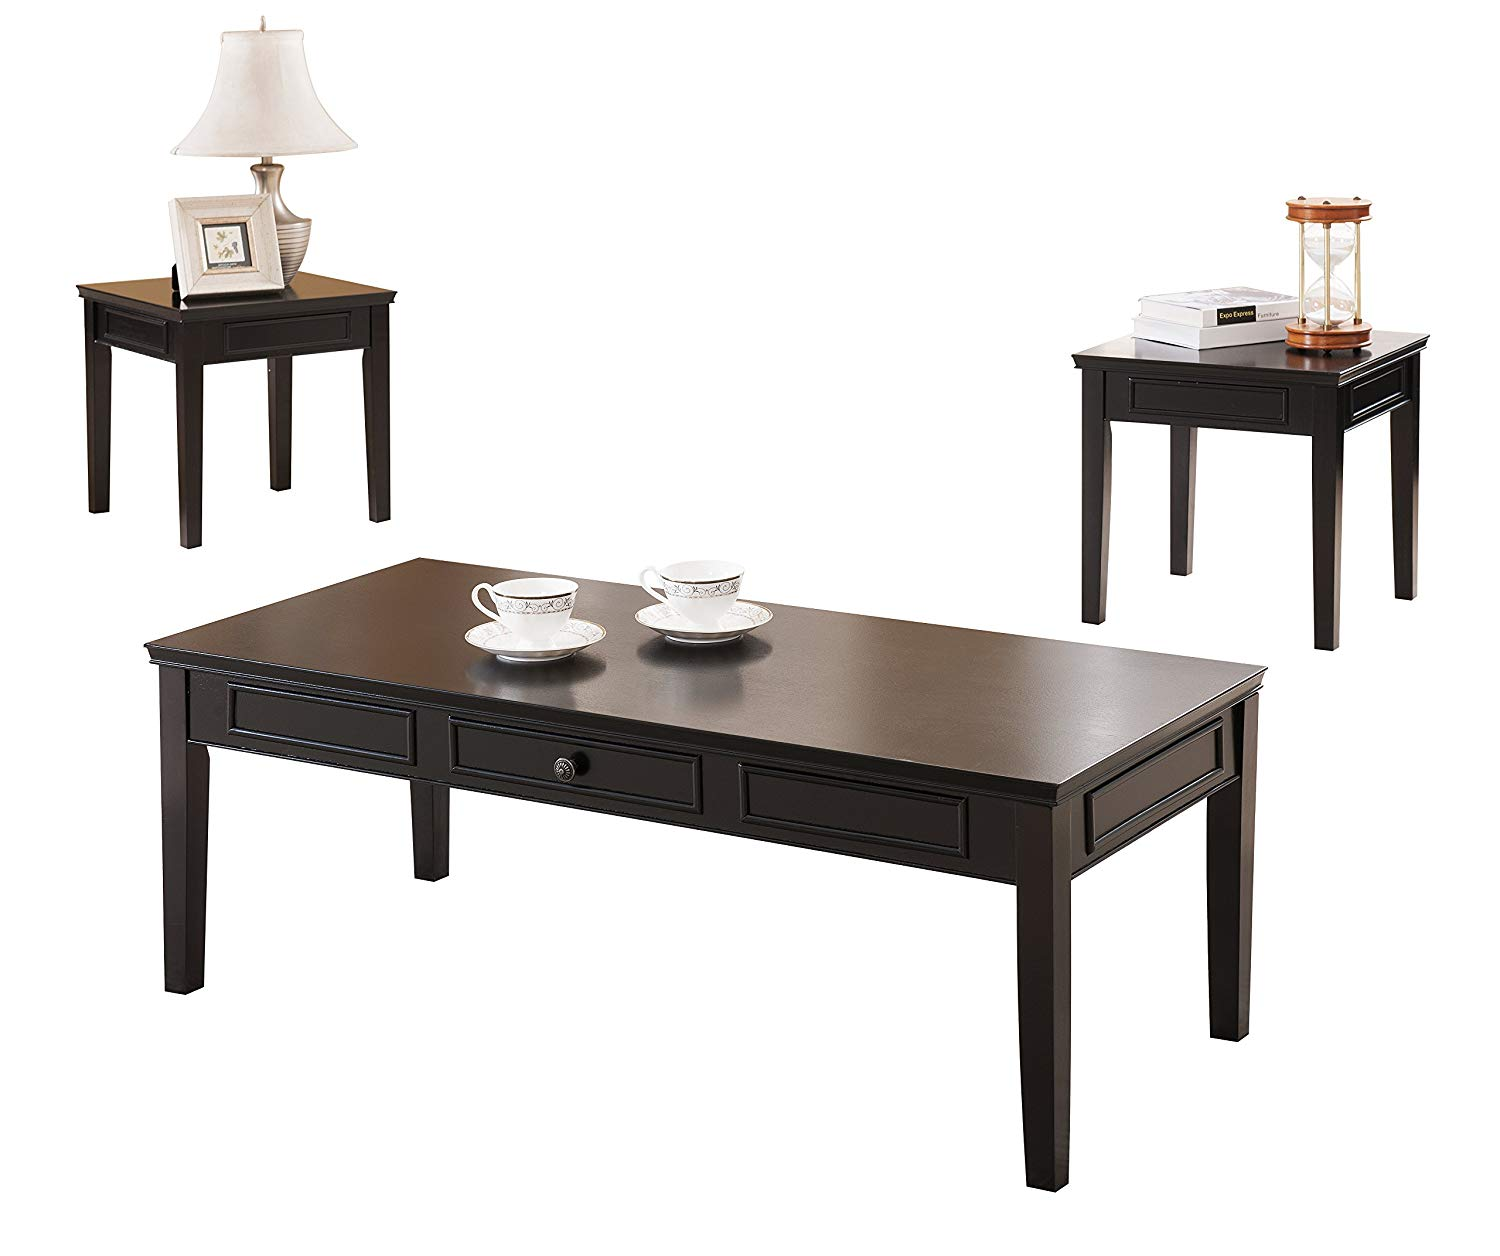 Pilaster Designs - 3 Pc. Black Finish Wood Coffee Table & 2 End Tables Occasional Set